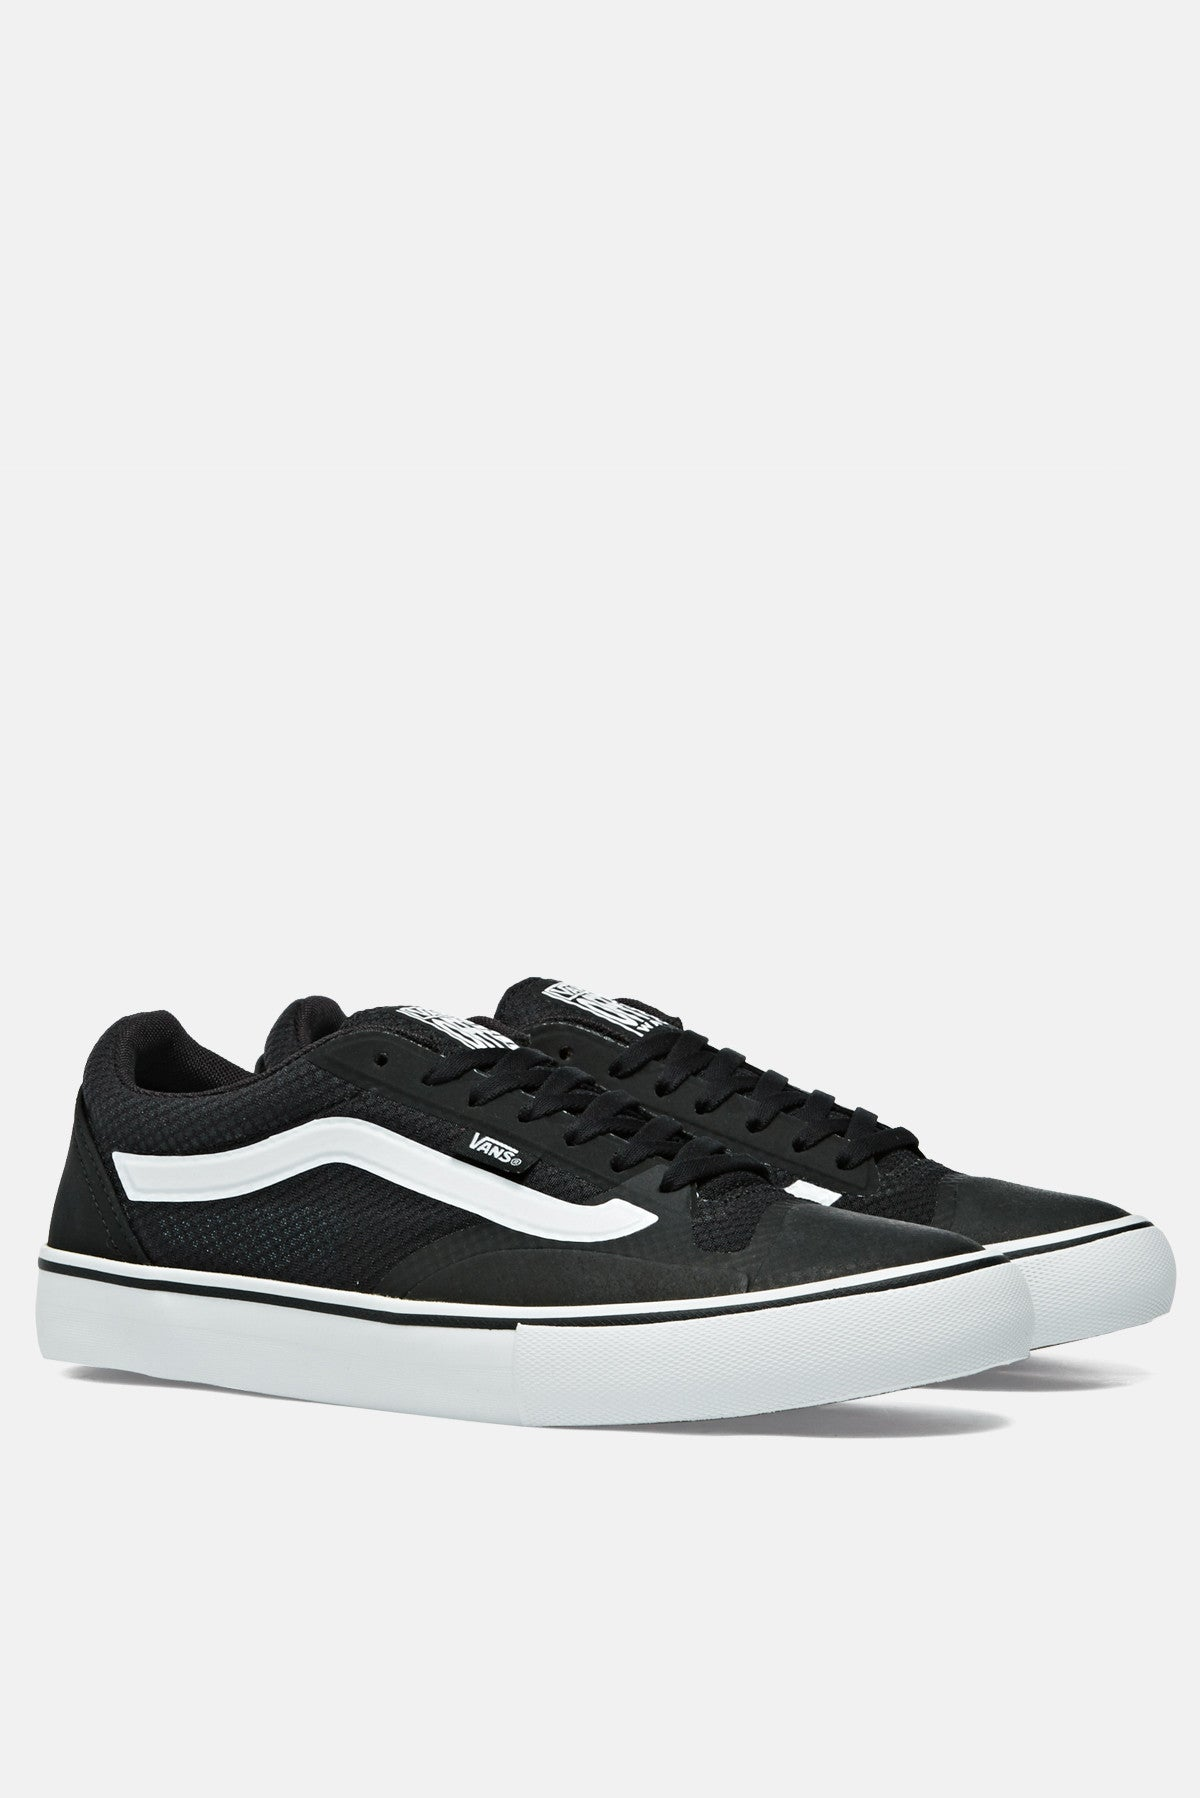 Vans AVE Rapidweld Pro Lite Shoes available from Priory e5fd33549a